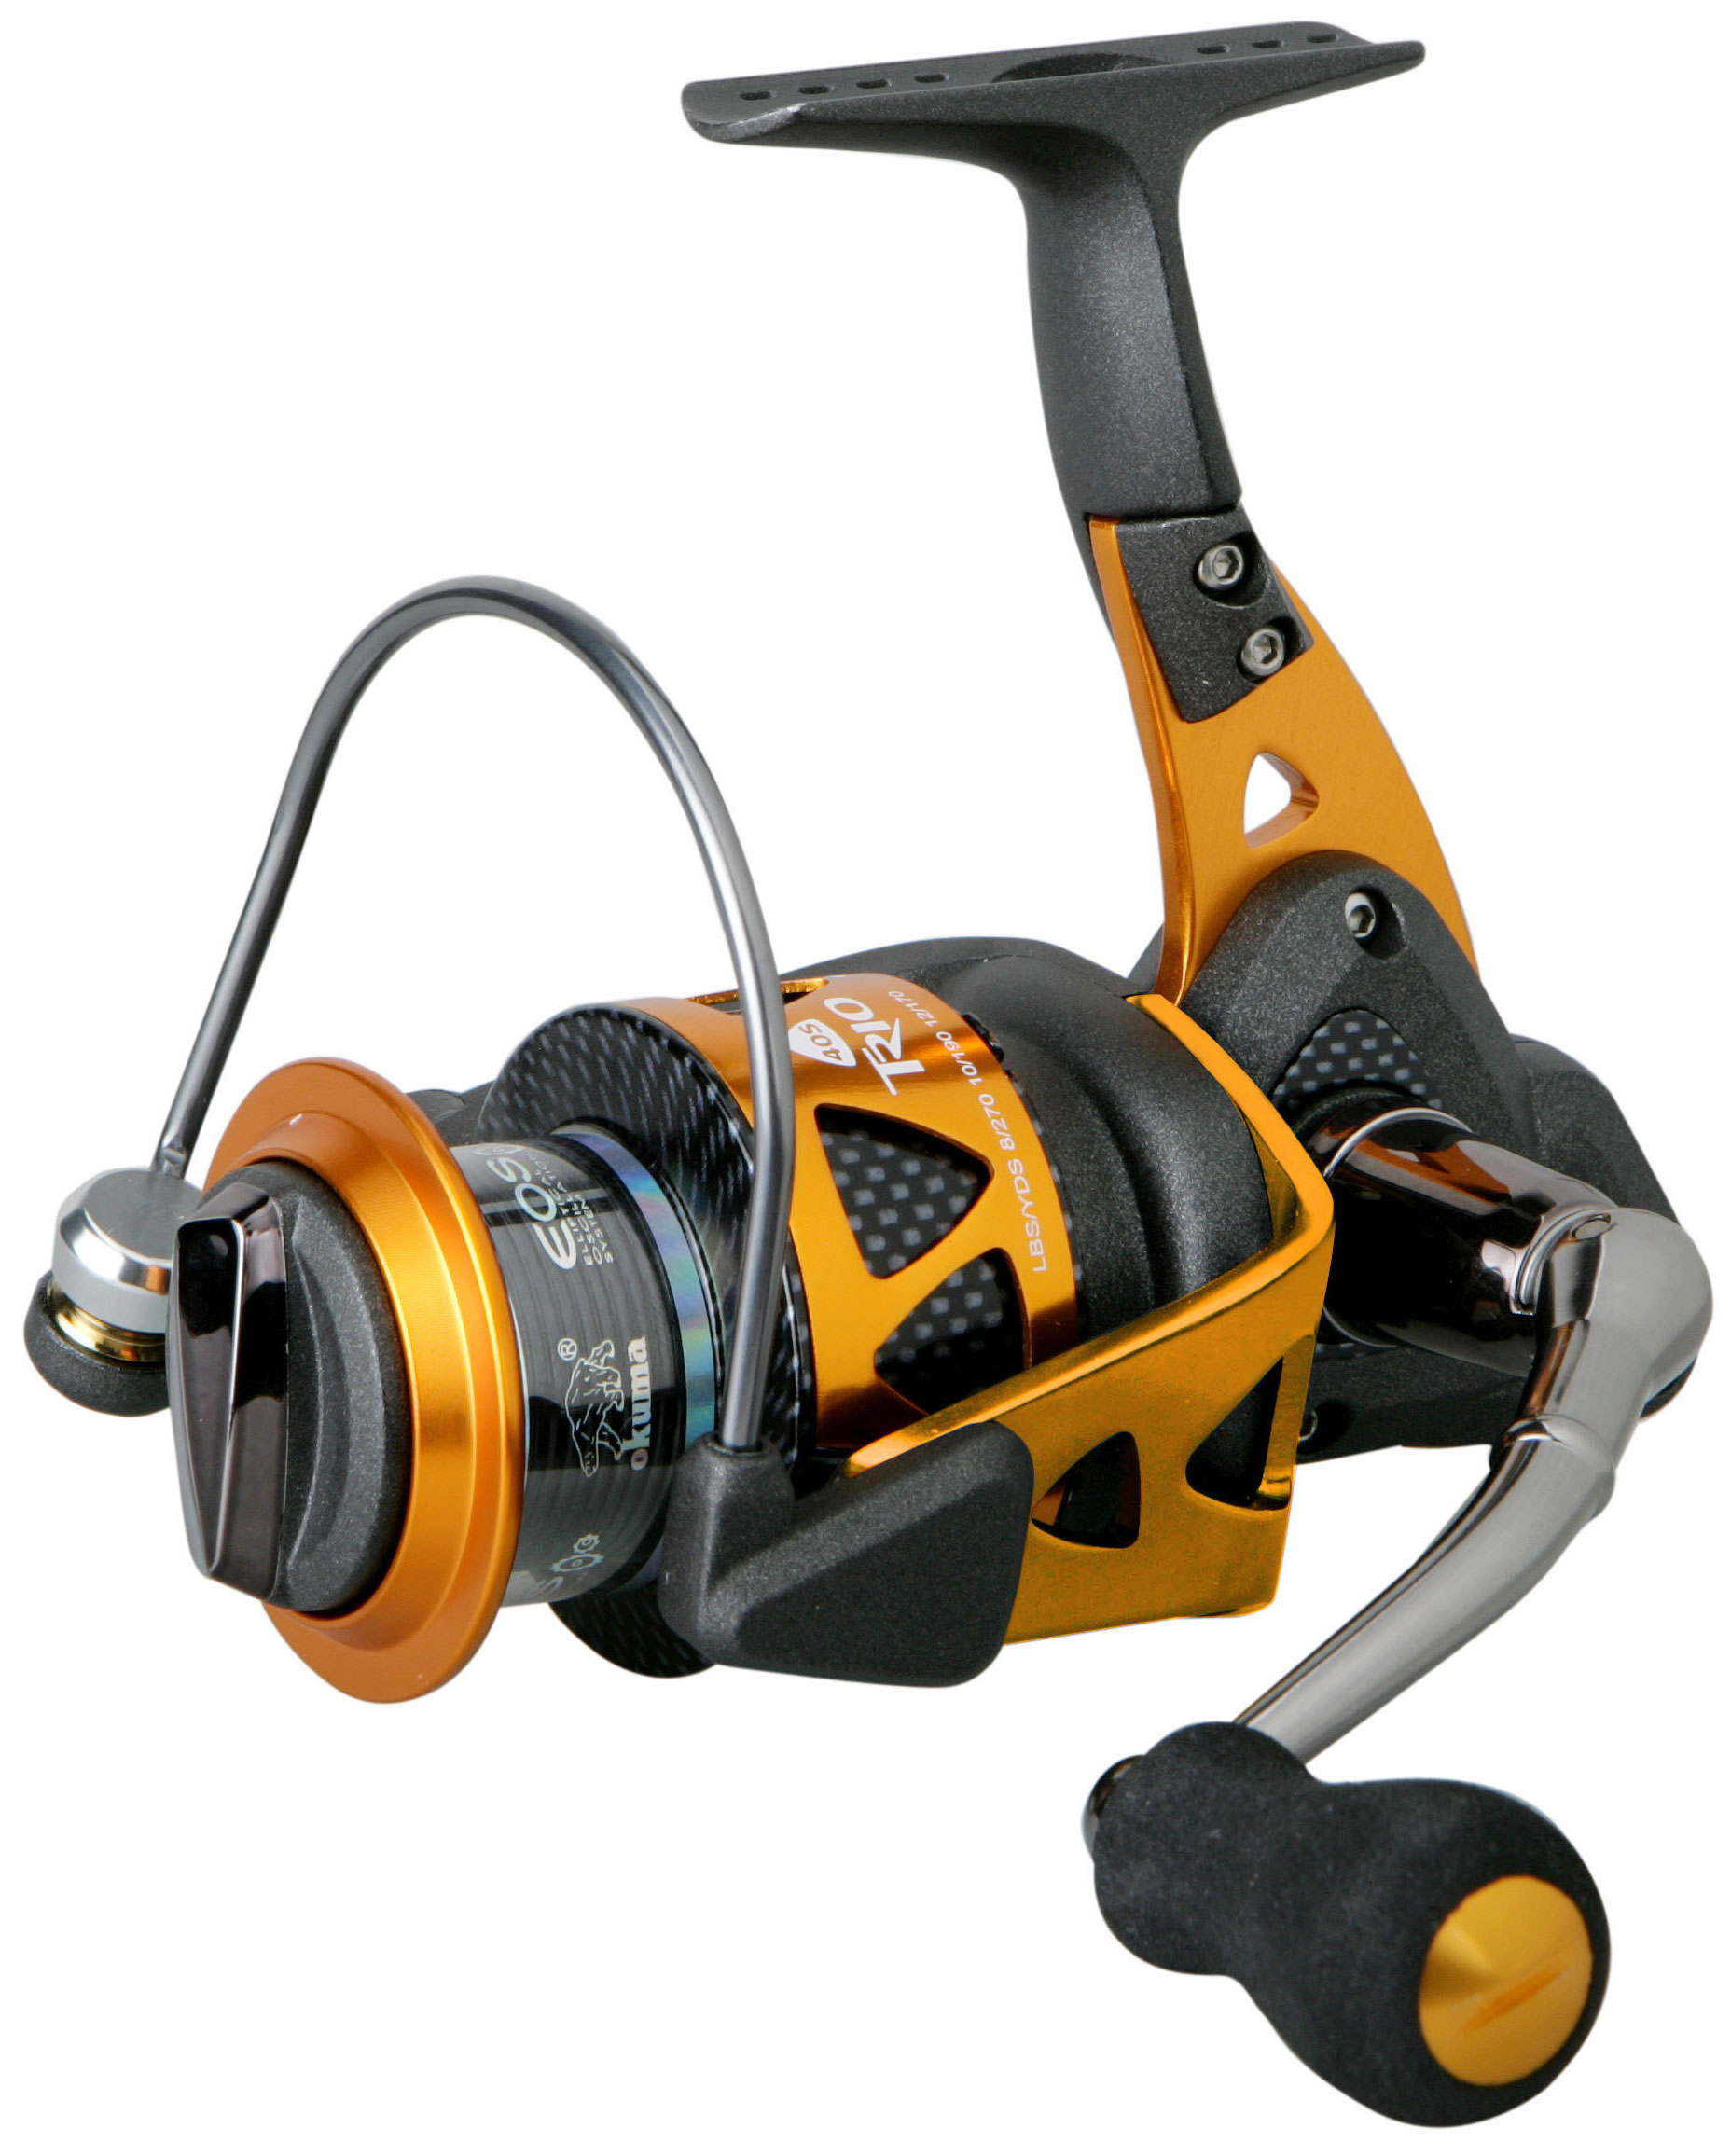 Delightful Spinning Reels For Bass